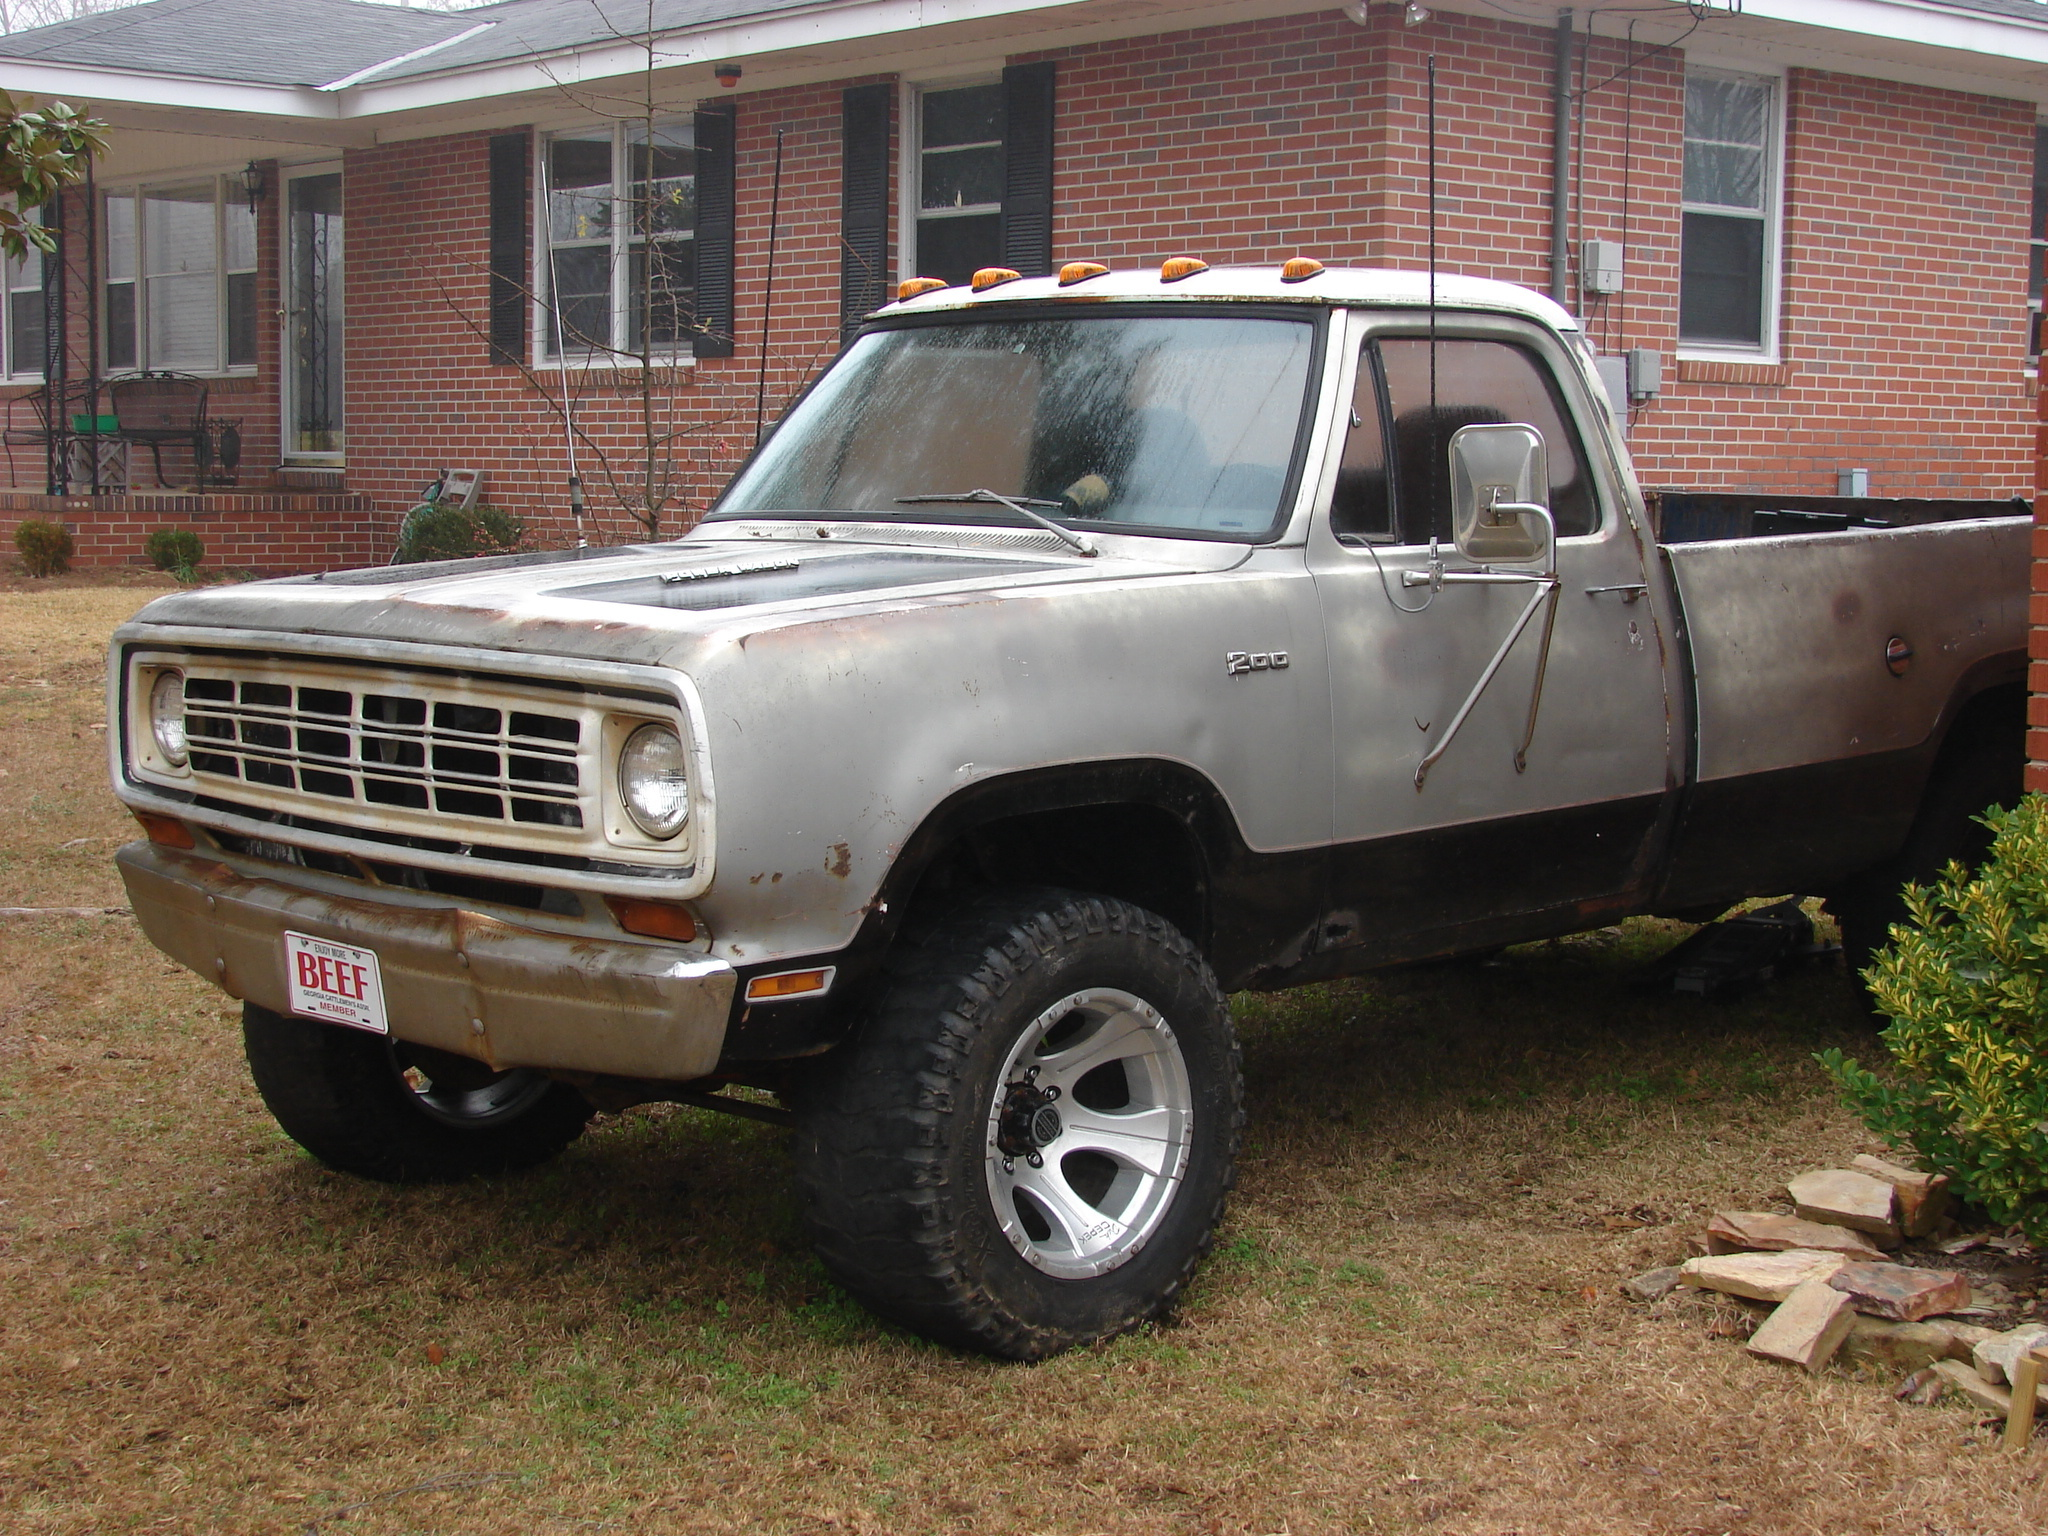 Demon_Offroad 1974 Dodge Power Wagon